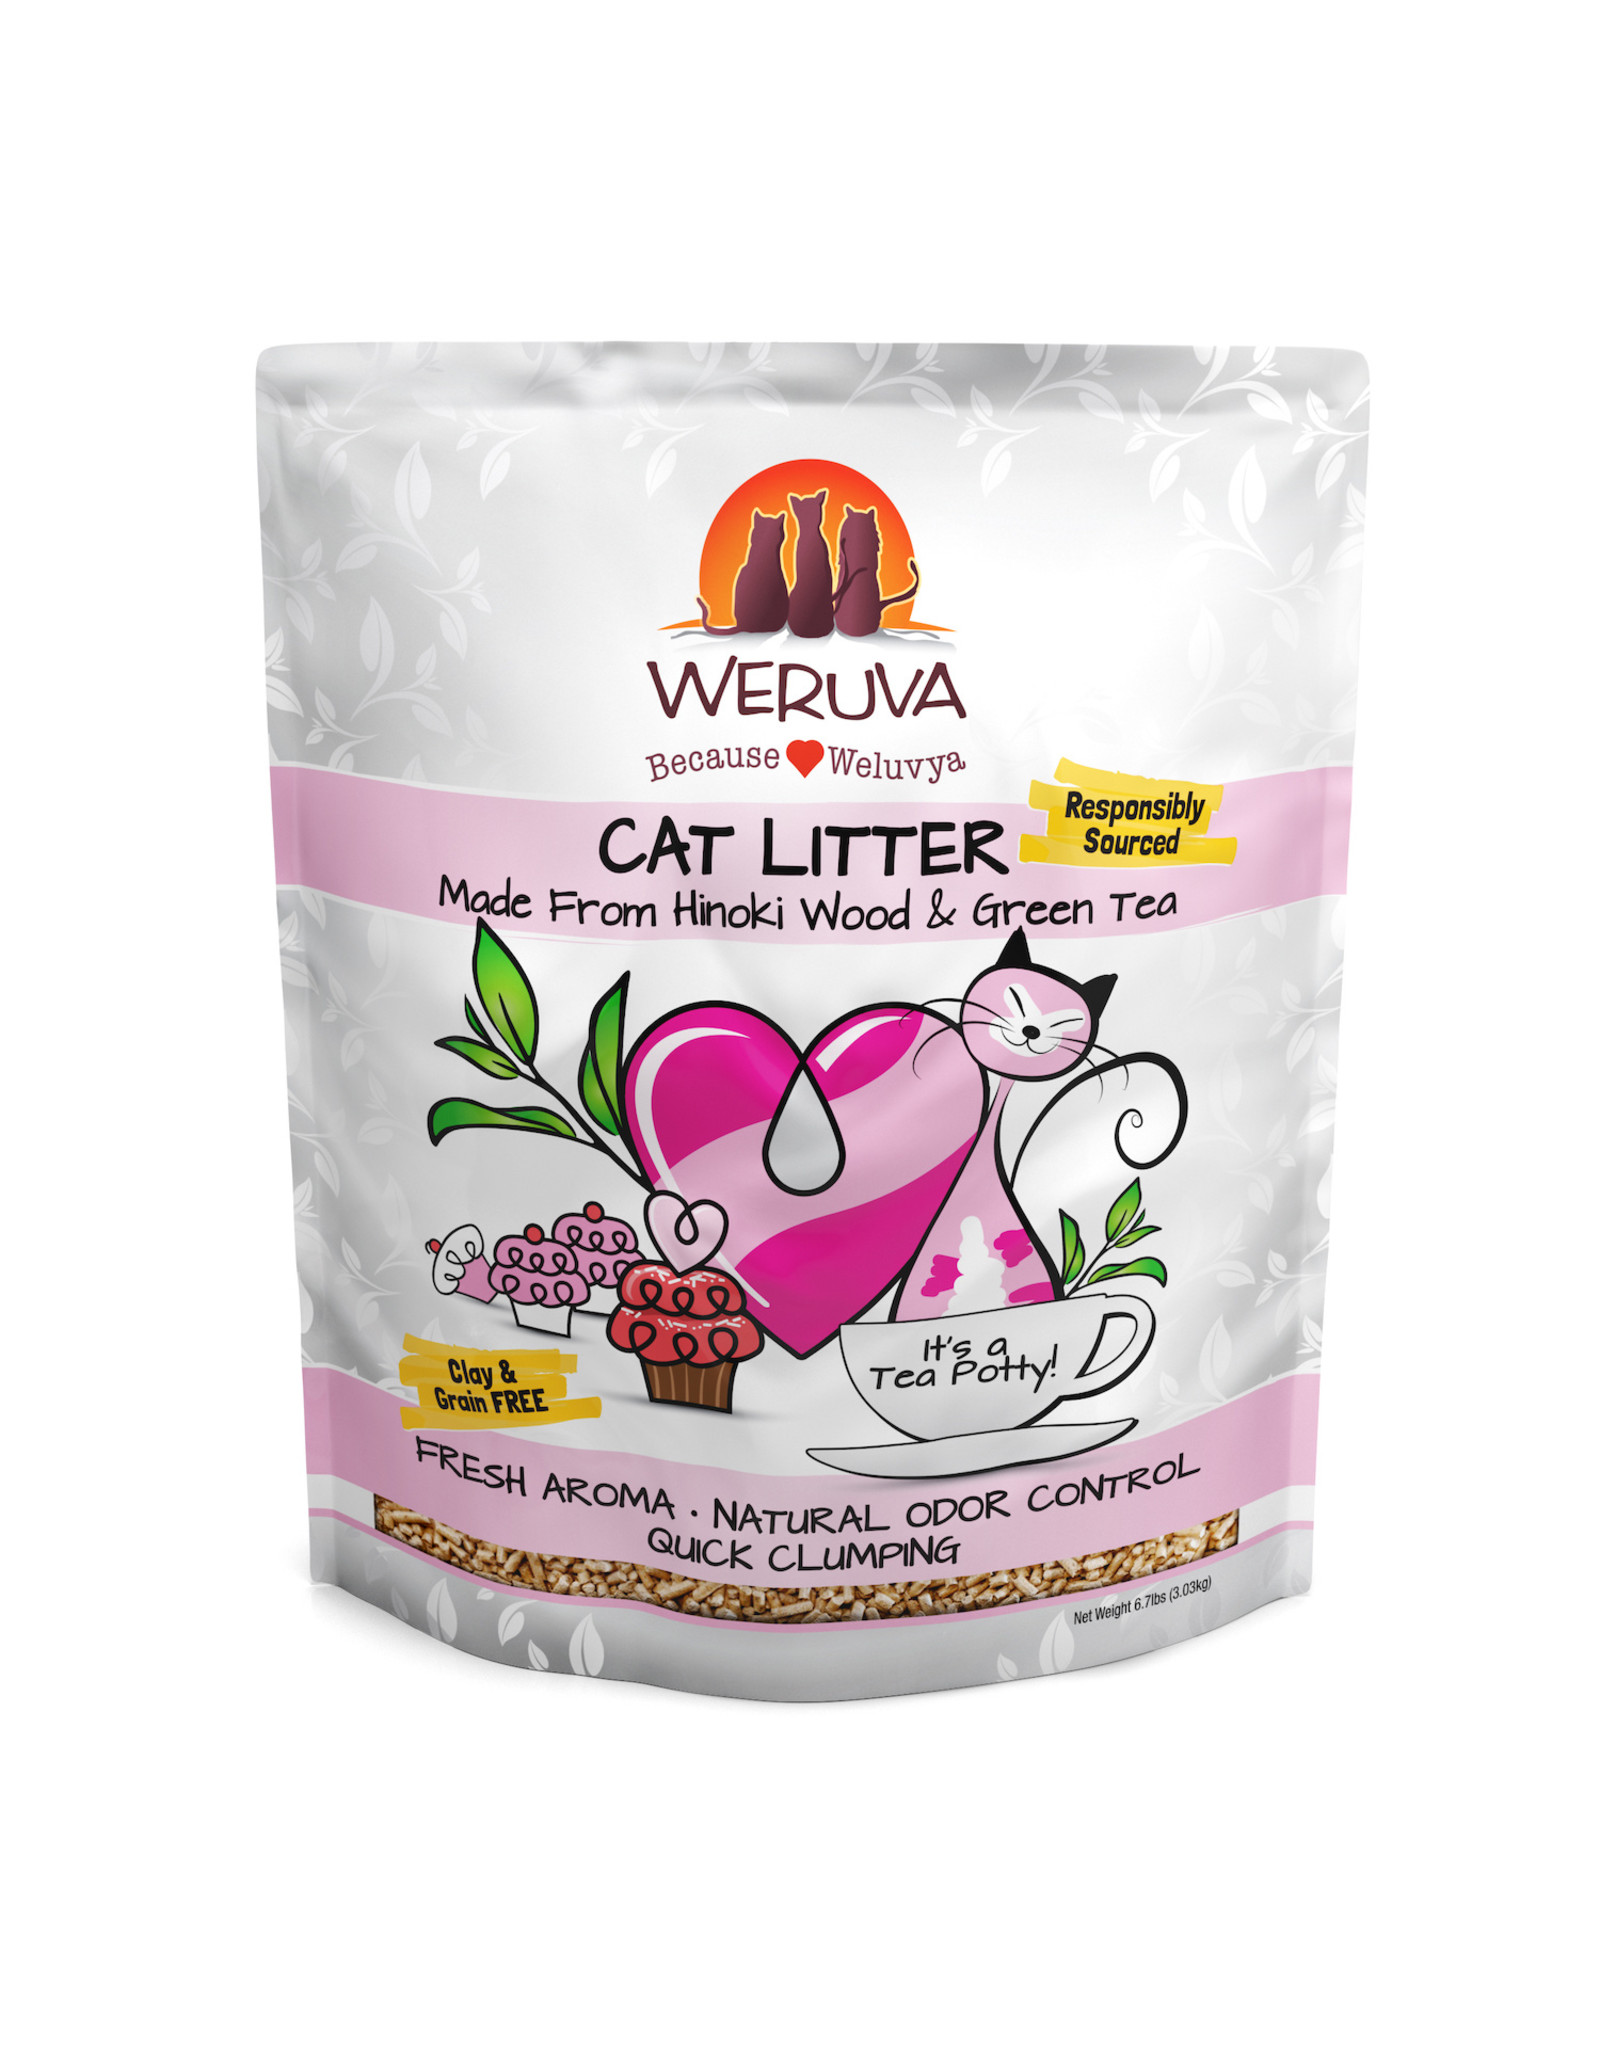 Weruva WERUVA CAT LITTER IT'S A TEA POTTY! WITH HINOKI WOOD & GREEN TEA